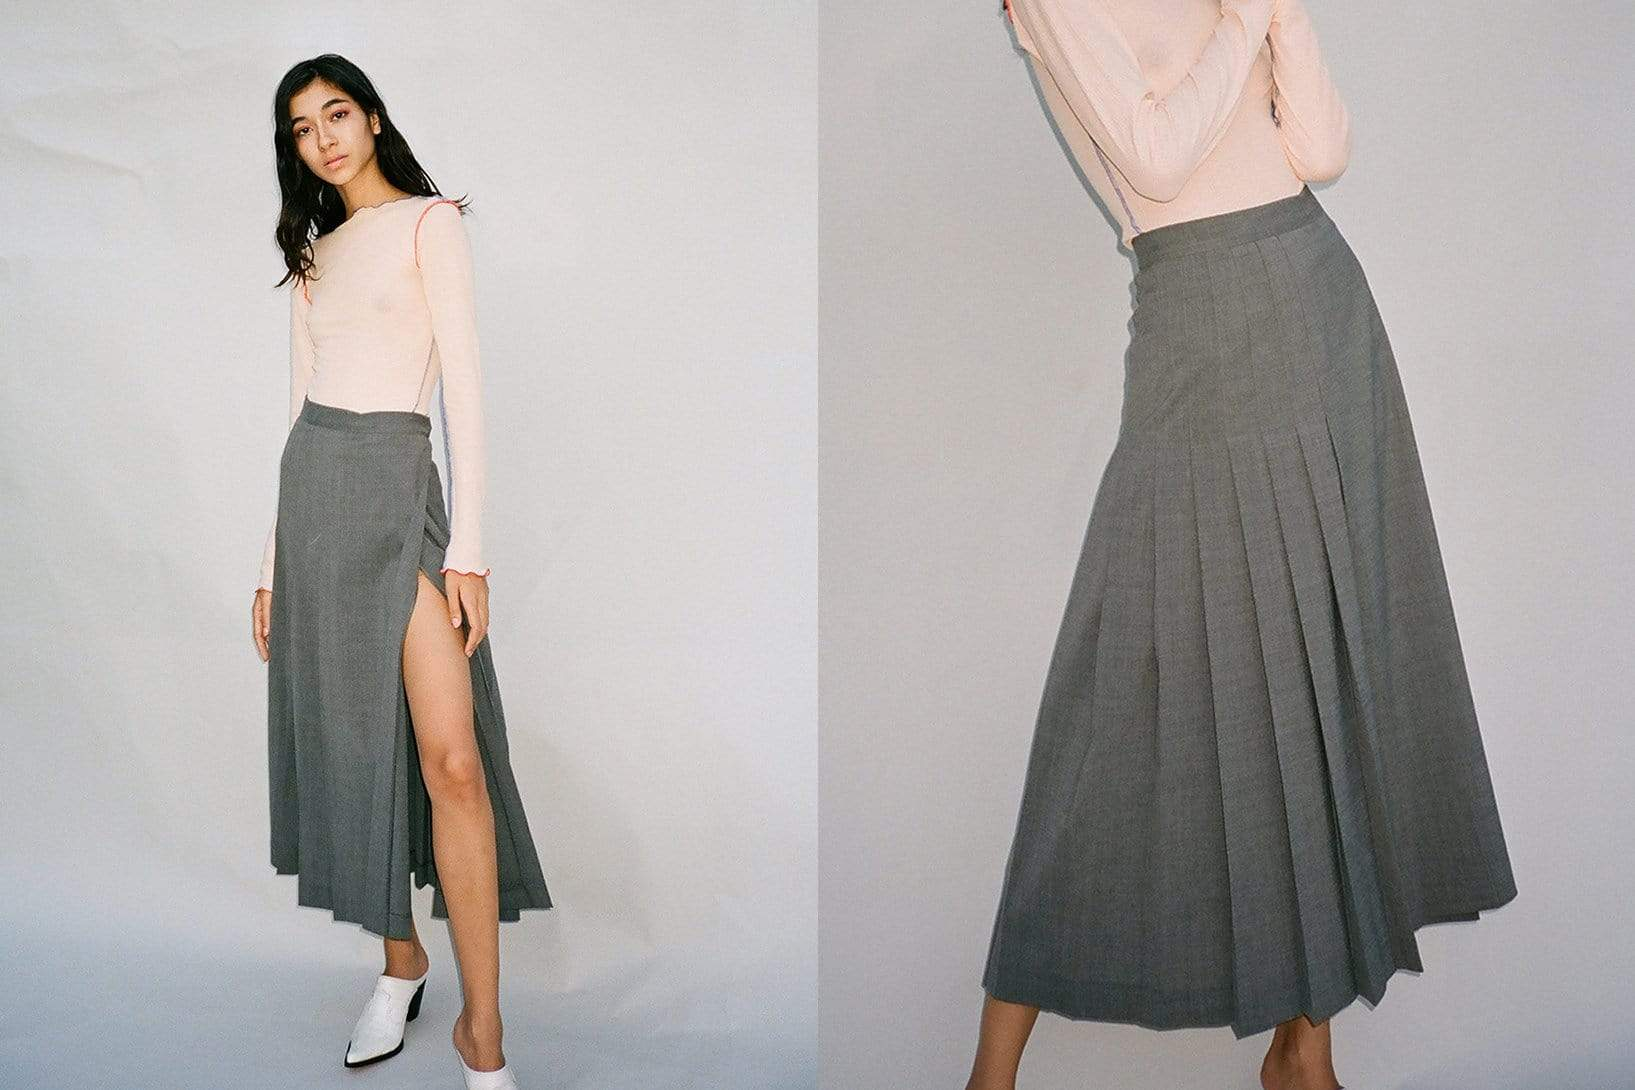 Umbra Skirt - MAIMOUN